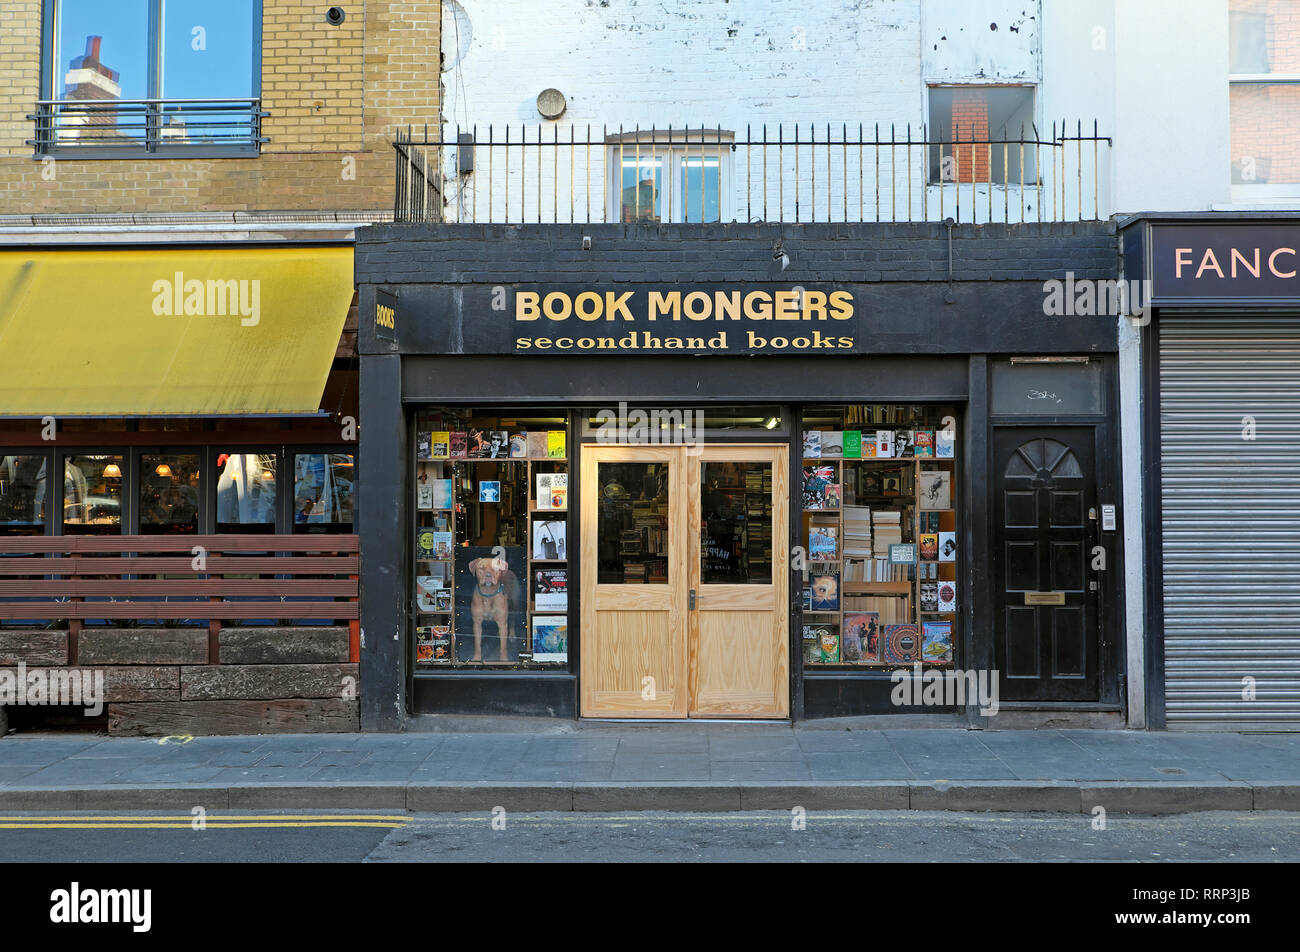 Book Mongers second hand books book shop exterior facade on Coldharbour Lane in Brixton South London SW9 England UK   KATHY DEWITT - Stock Image